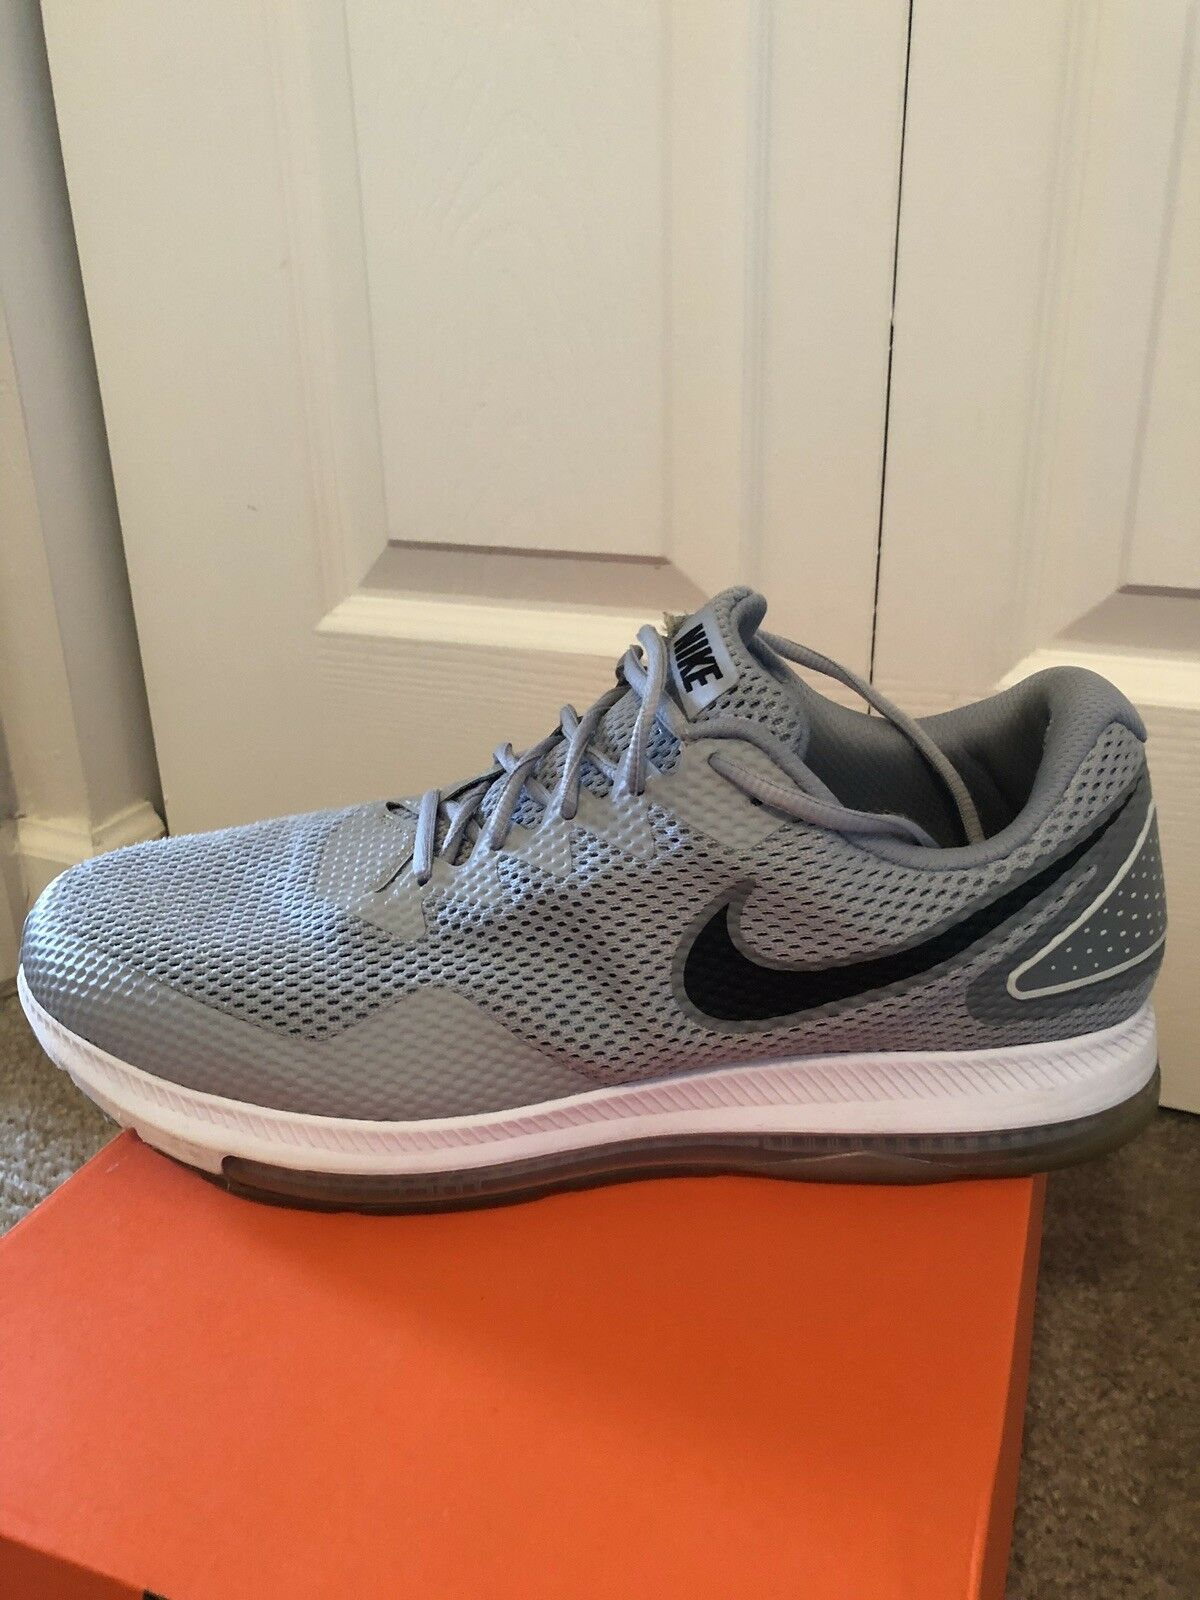 Nike Men's Zoom All Out Low 2 - Size 13 - Wolf Grey Black Cool grey